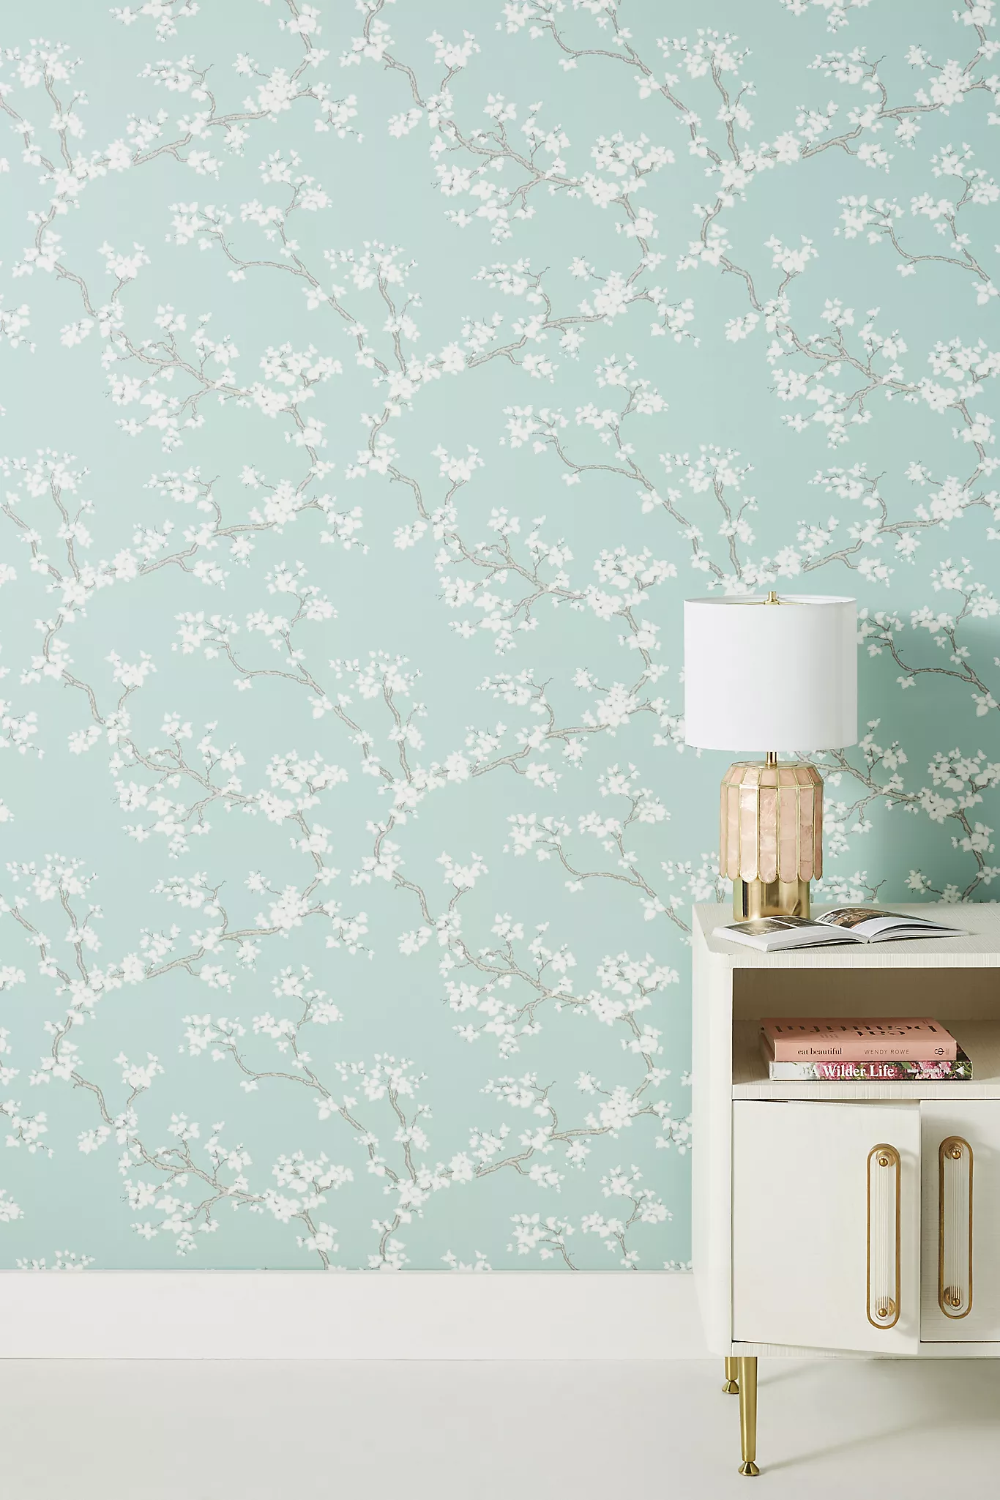 Branches Wallpaper in 2020 Wallpaper manufacturers